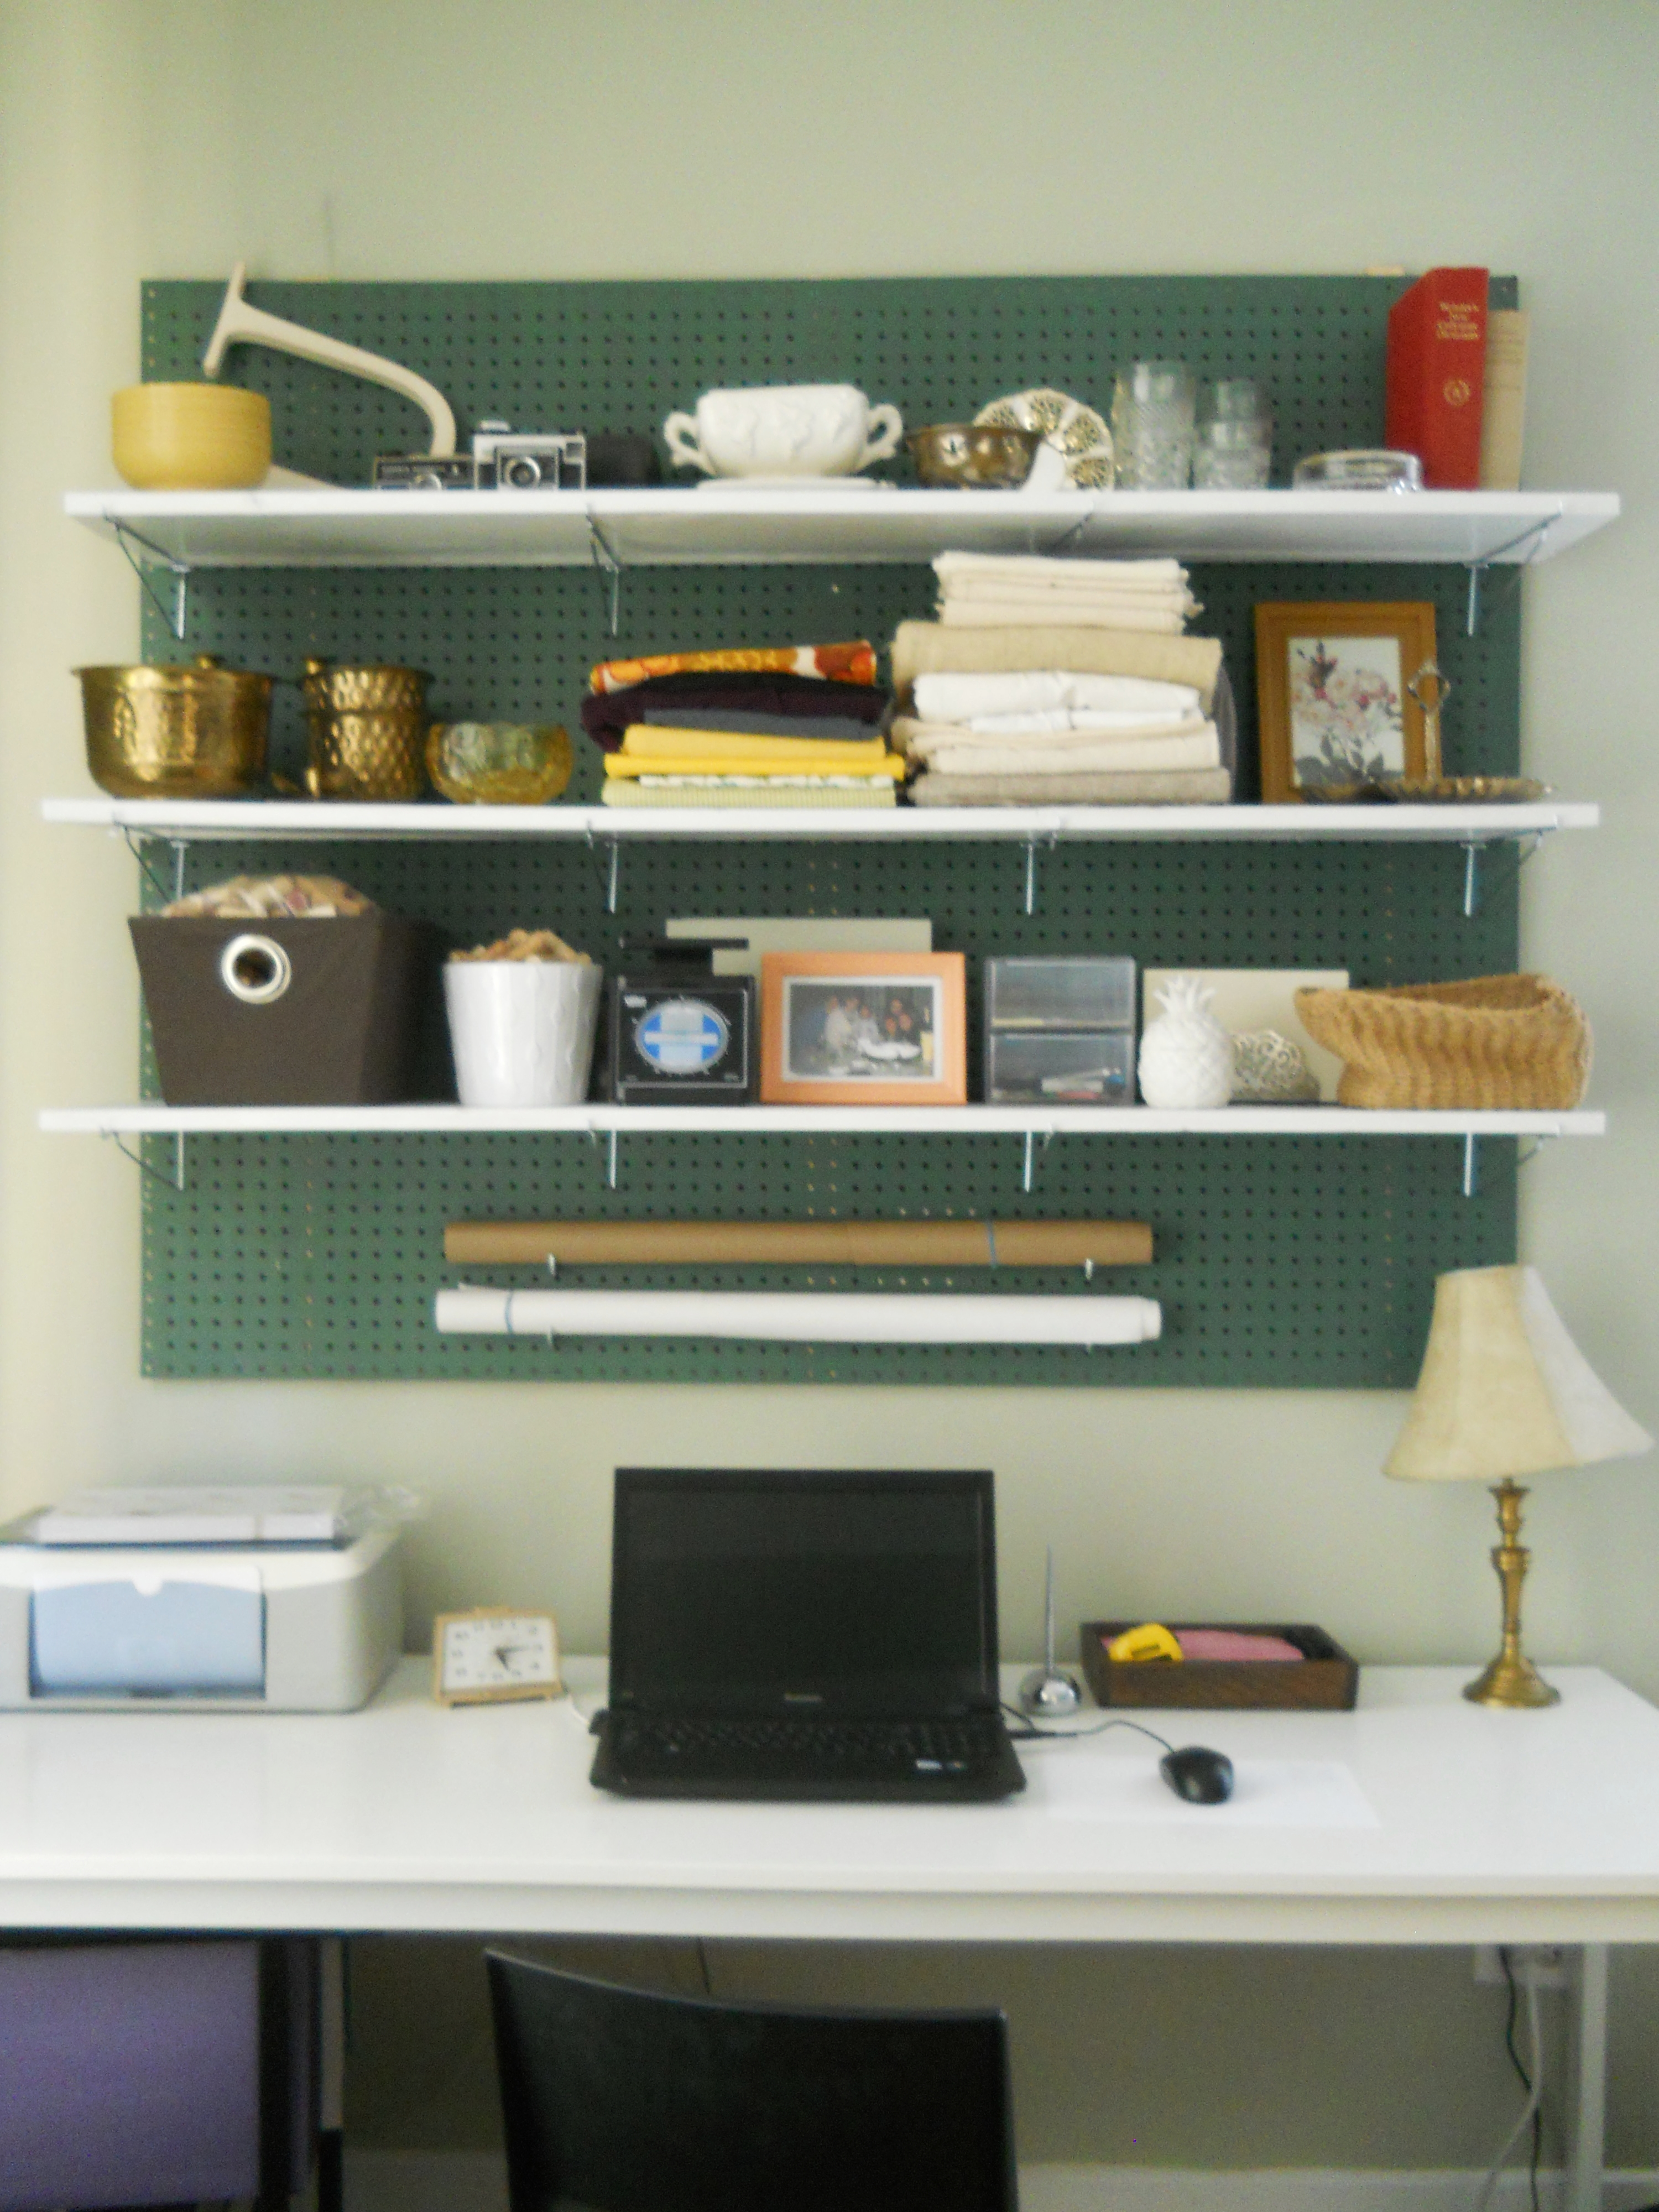 Cheap office shelving Storage Shelves The Container Store Thing Of Beauty Living Well On The Cheap